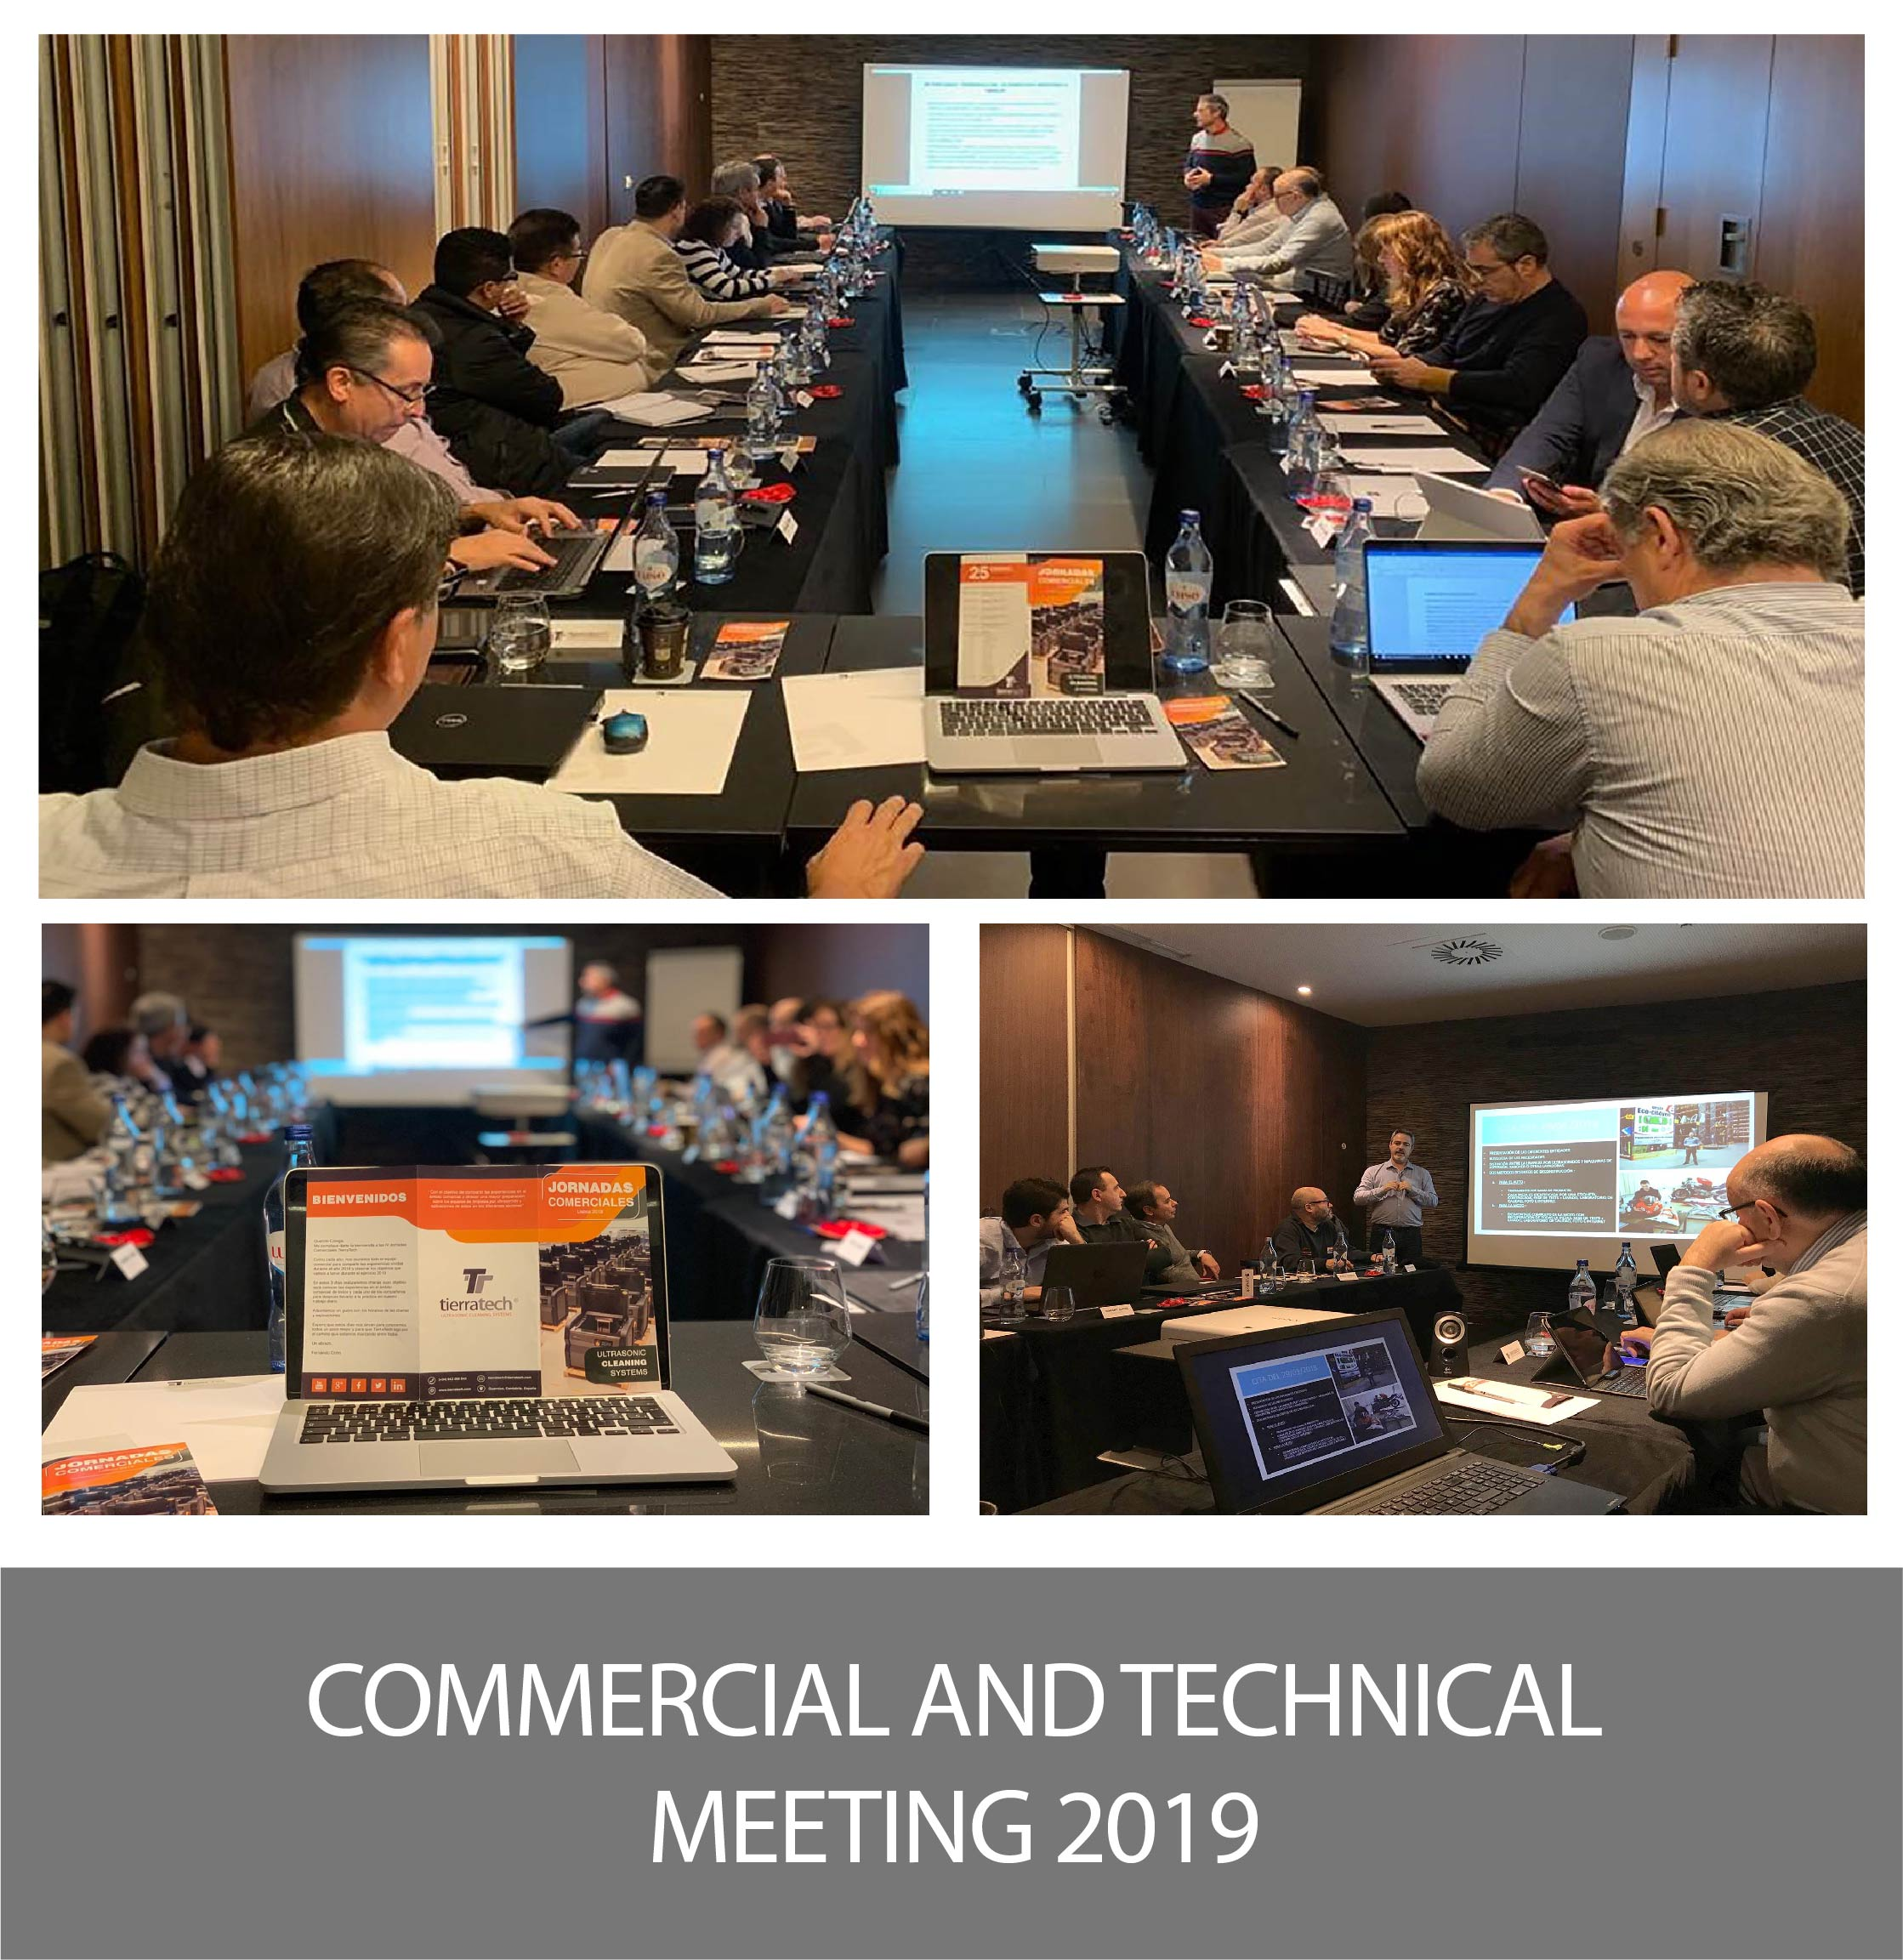 Commercial and Technical Meeting 2019